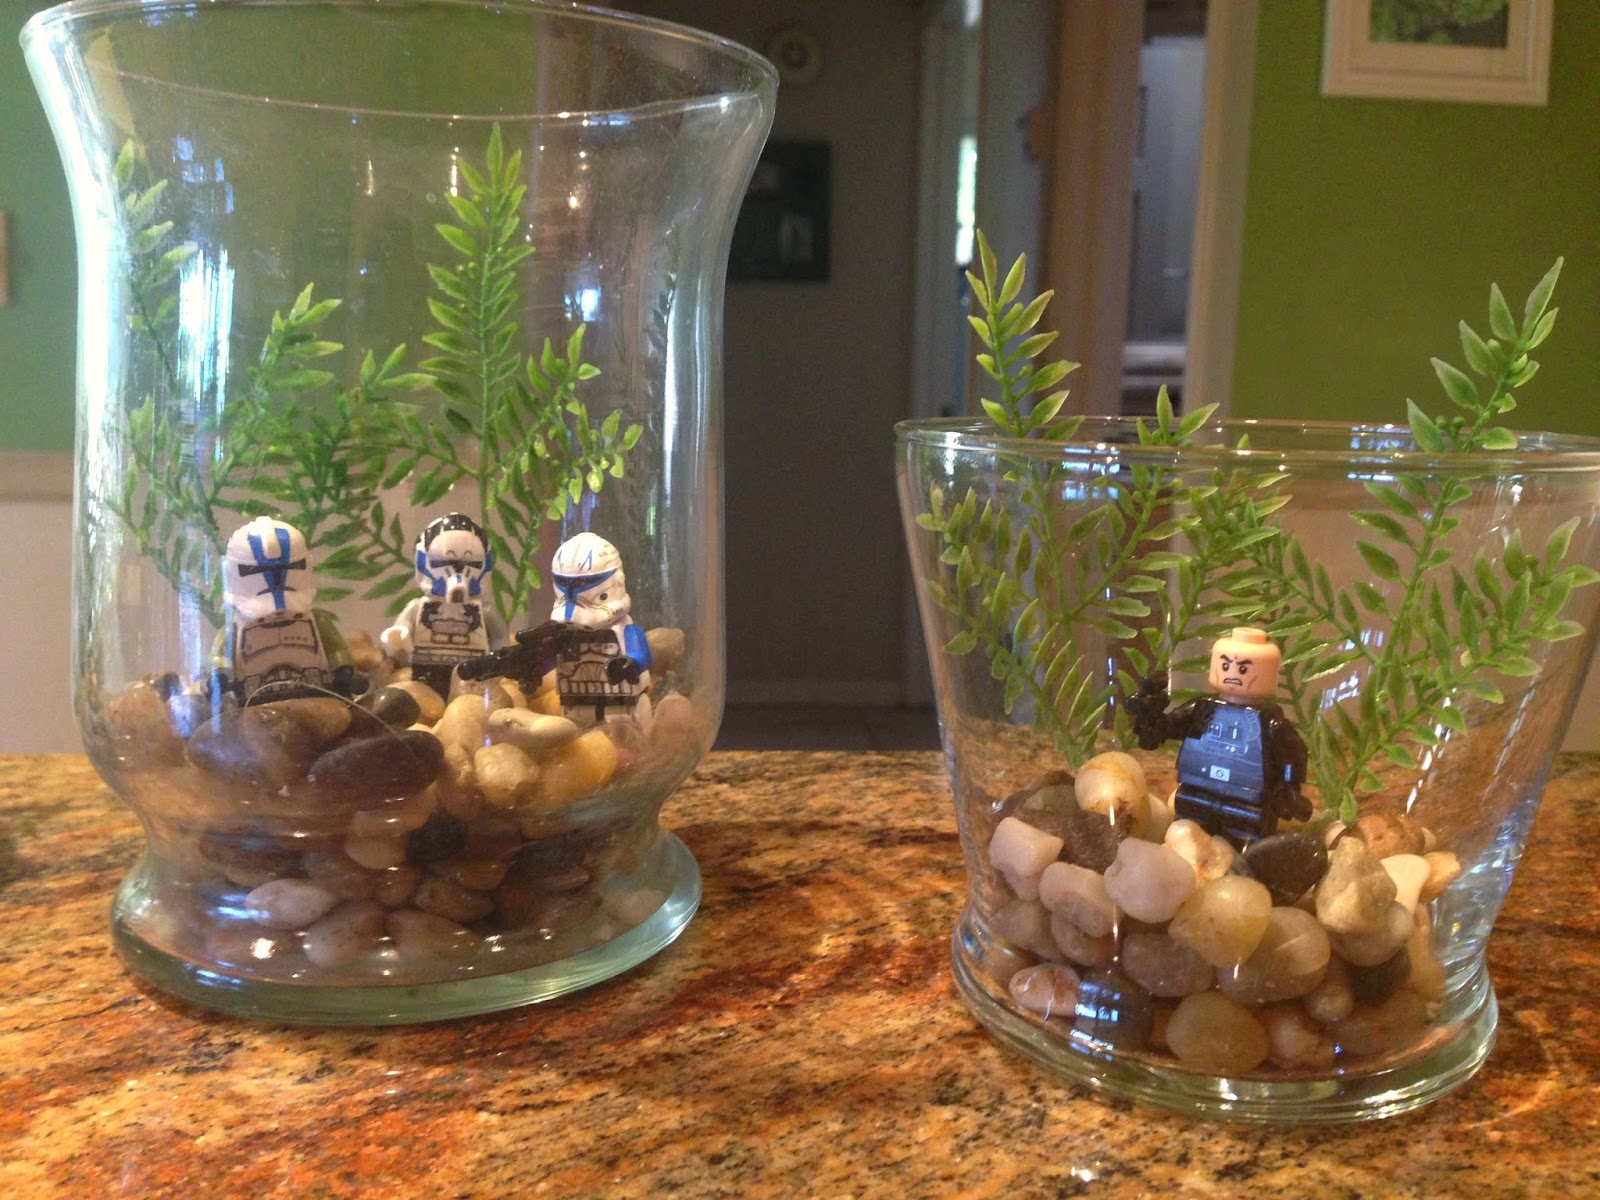 A Love Letter To Food Star Wars Birthday Party On A Budget